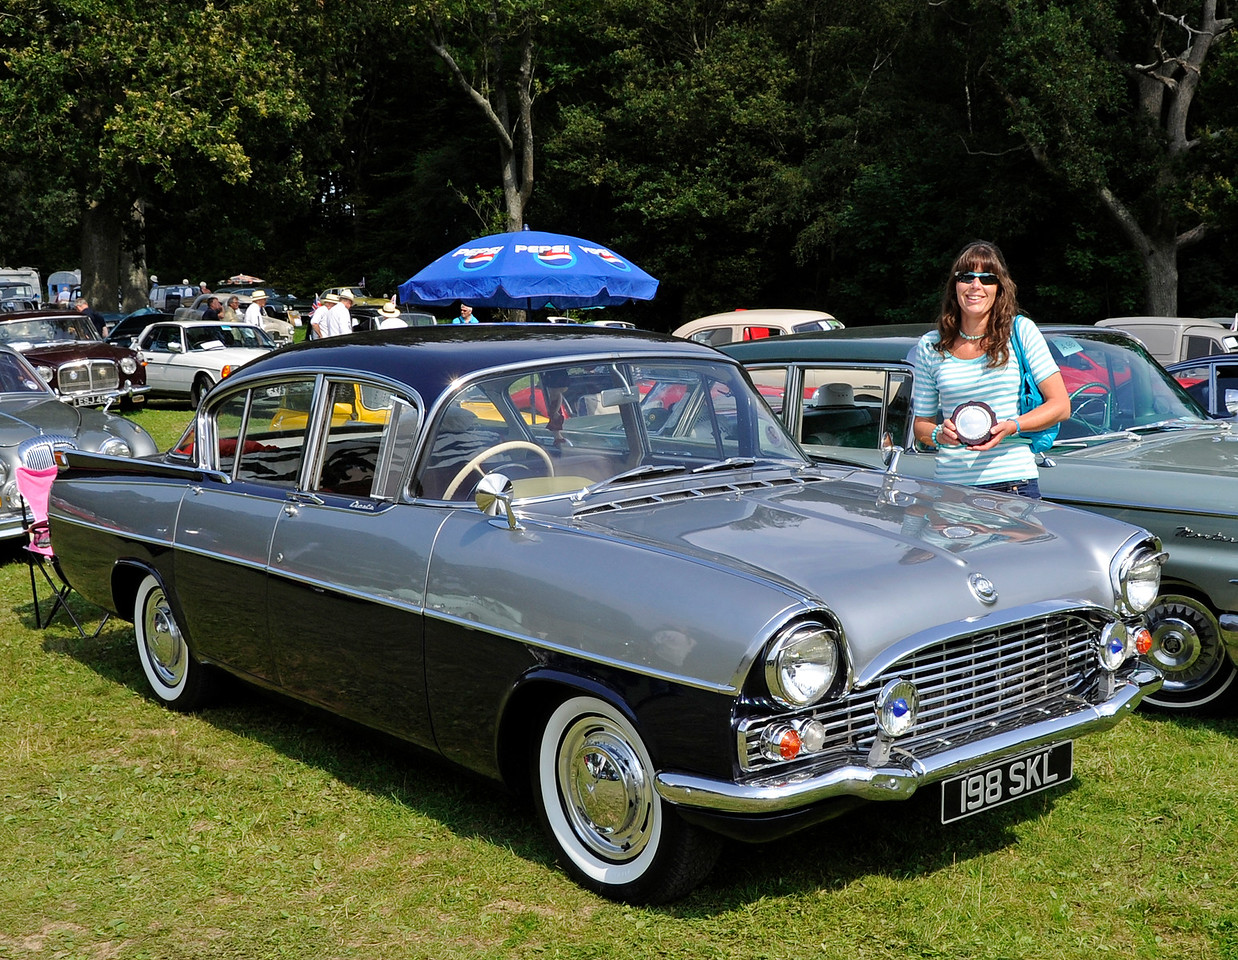 Karen Bush, the owner of the 1962 Vauxhall Cresta, 198SKL, was unfortunately unavailable to be photographed in 2015.  She is seen here in 2012 when her car won the Southdown Cup for Best in Show.  The independent judges who examined the vehicles in 2015 were unaware of her previous success.  12.08.2012  5630